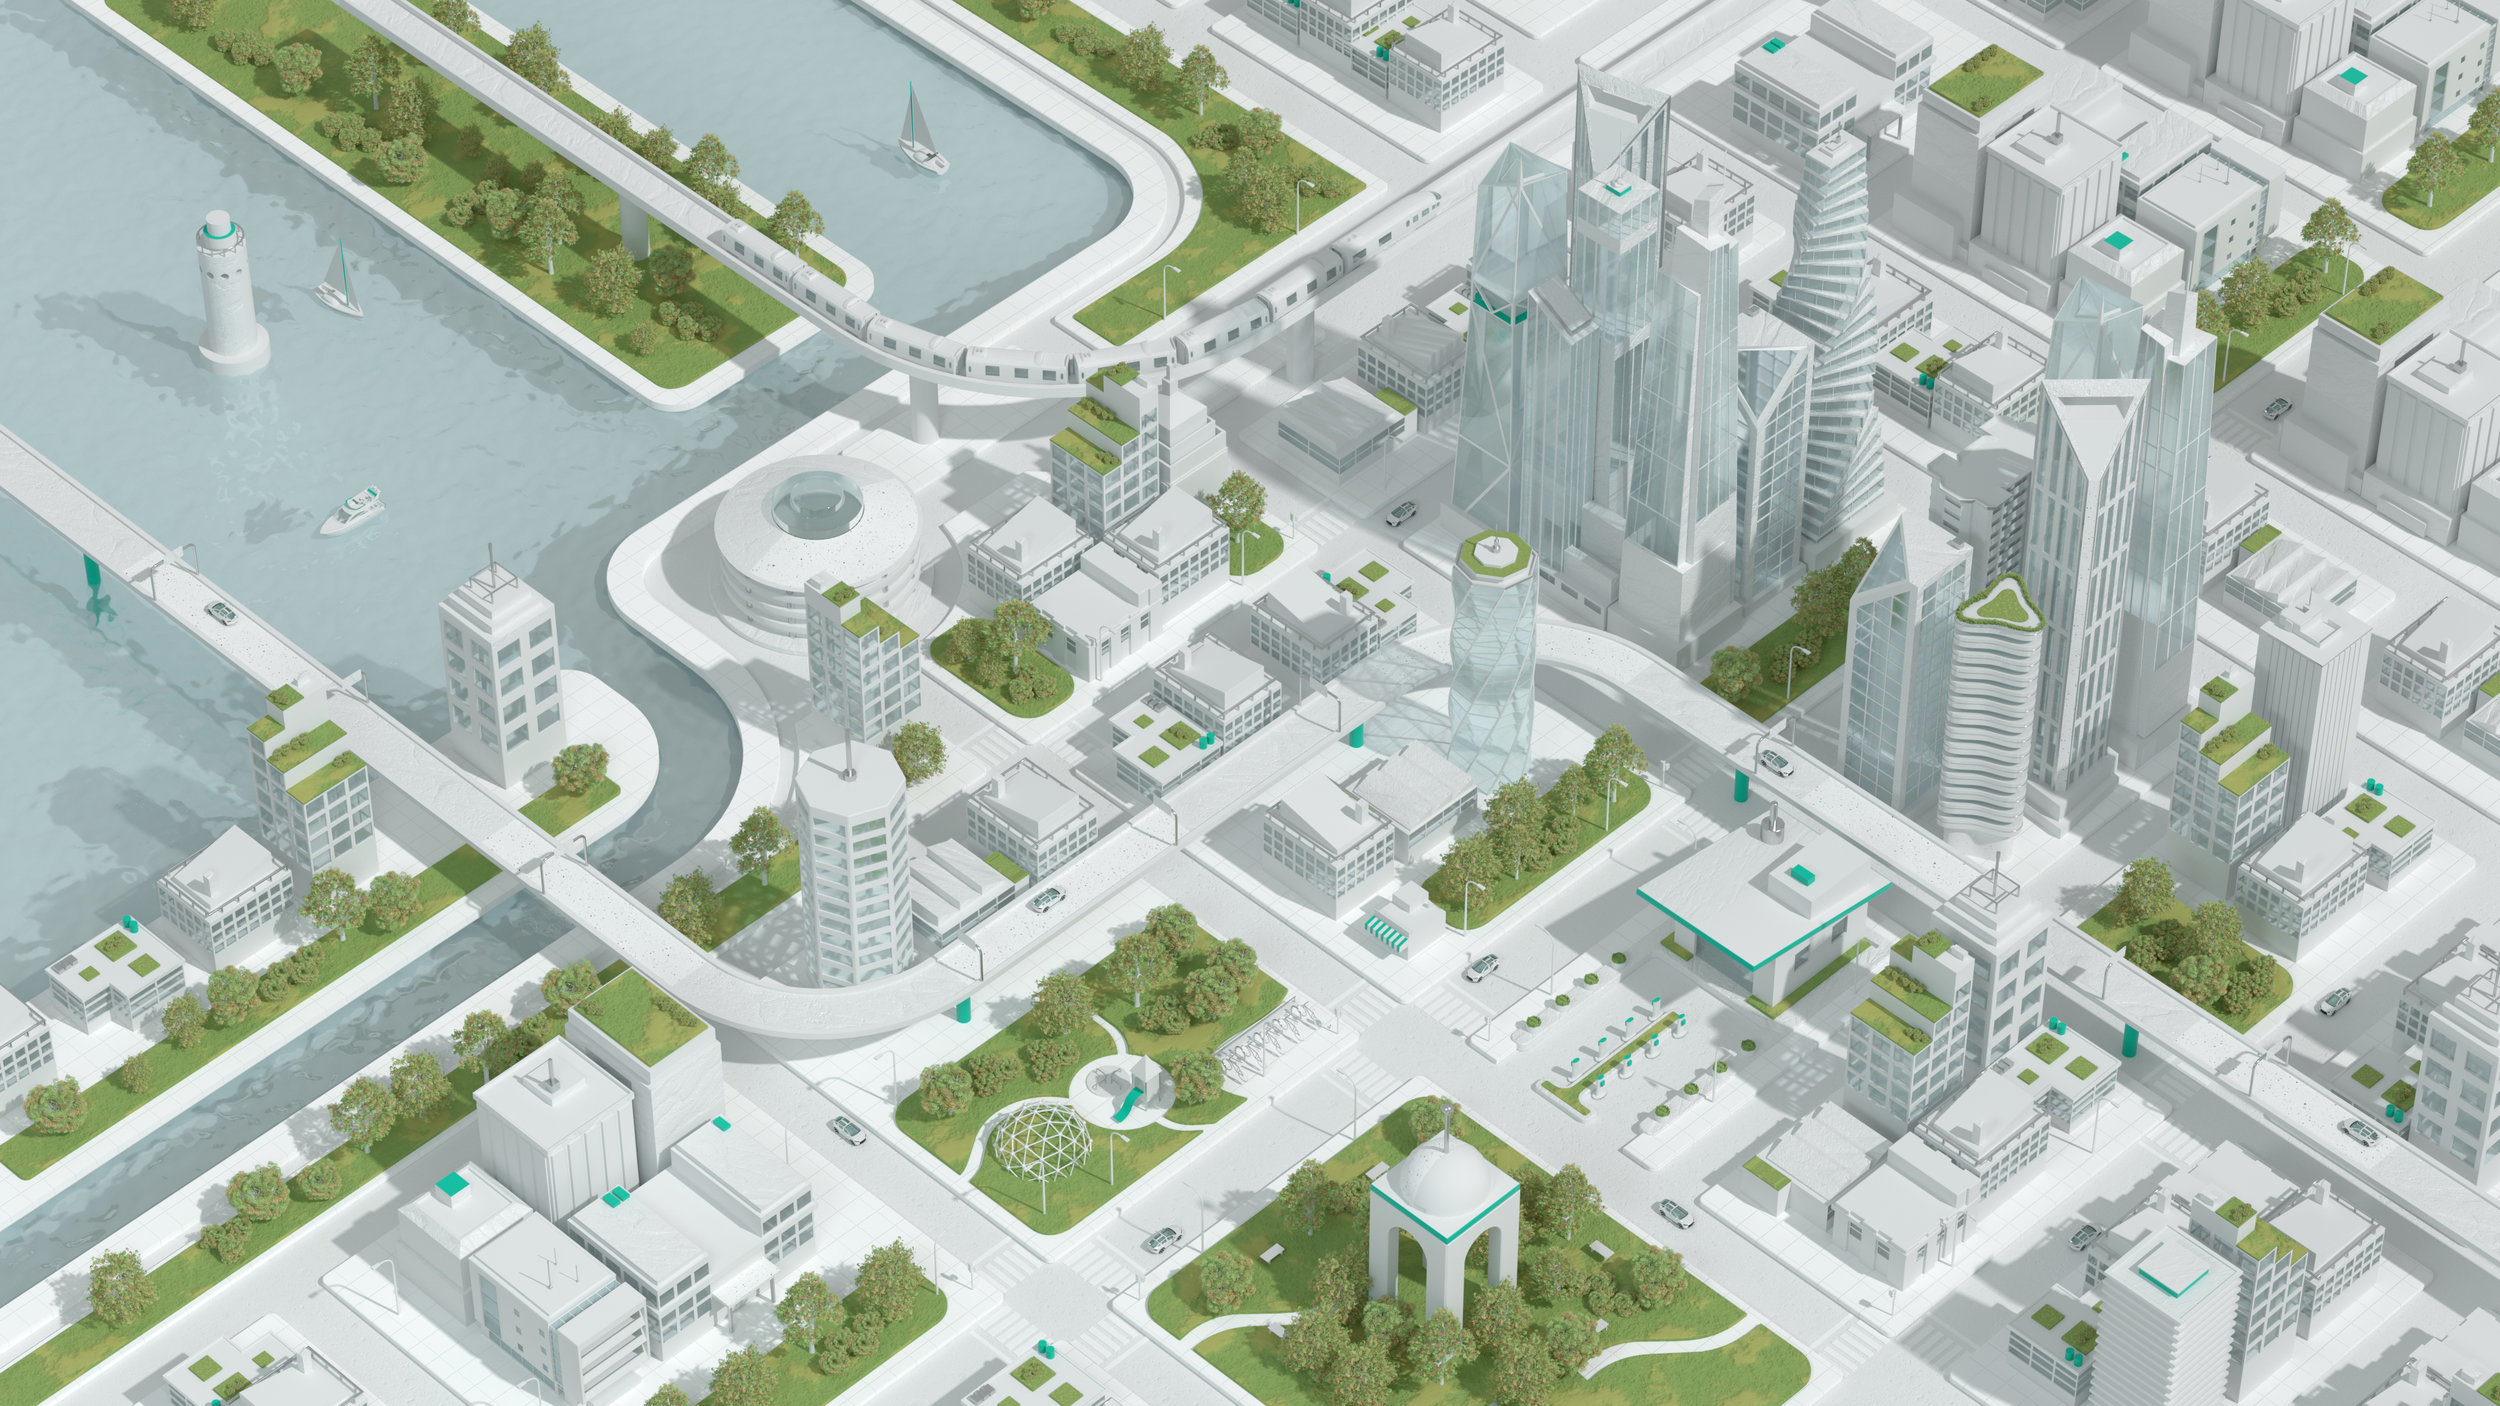 SIEMENS - THE FUTURE OF TRANSPORTATION